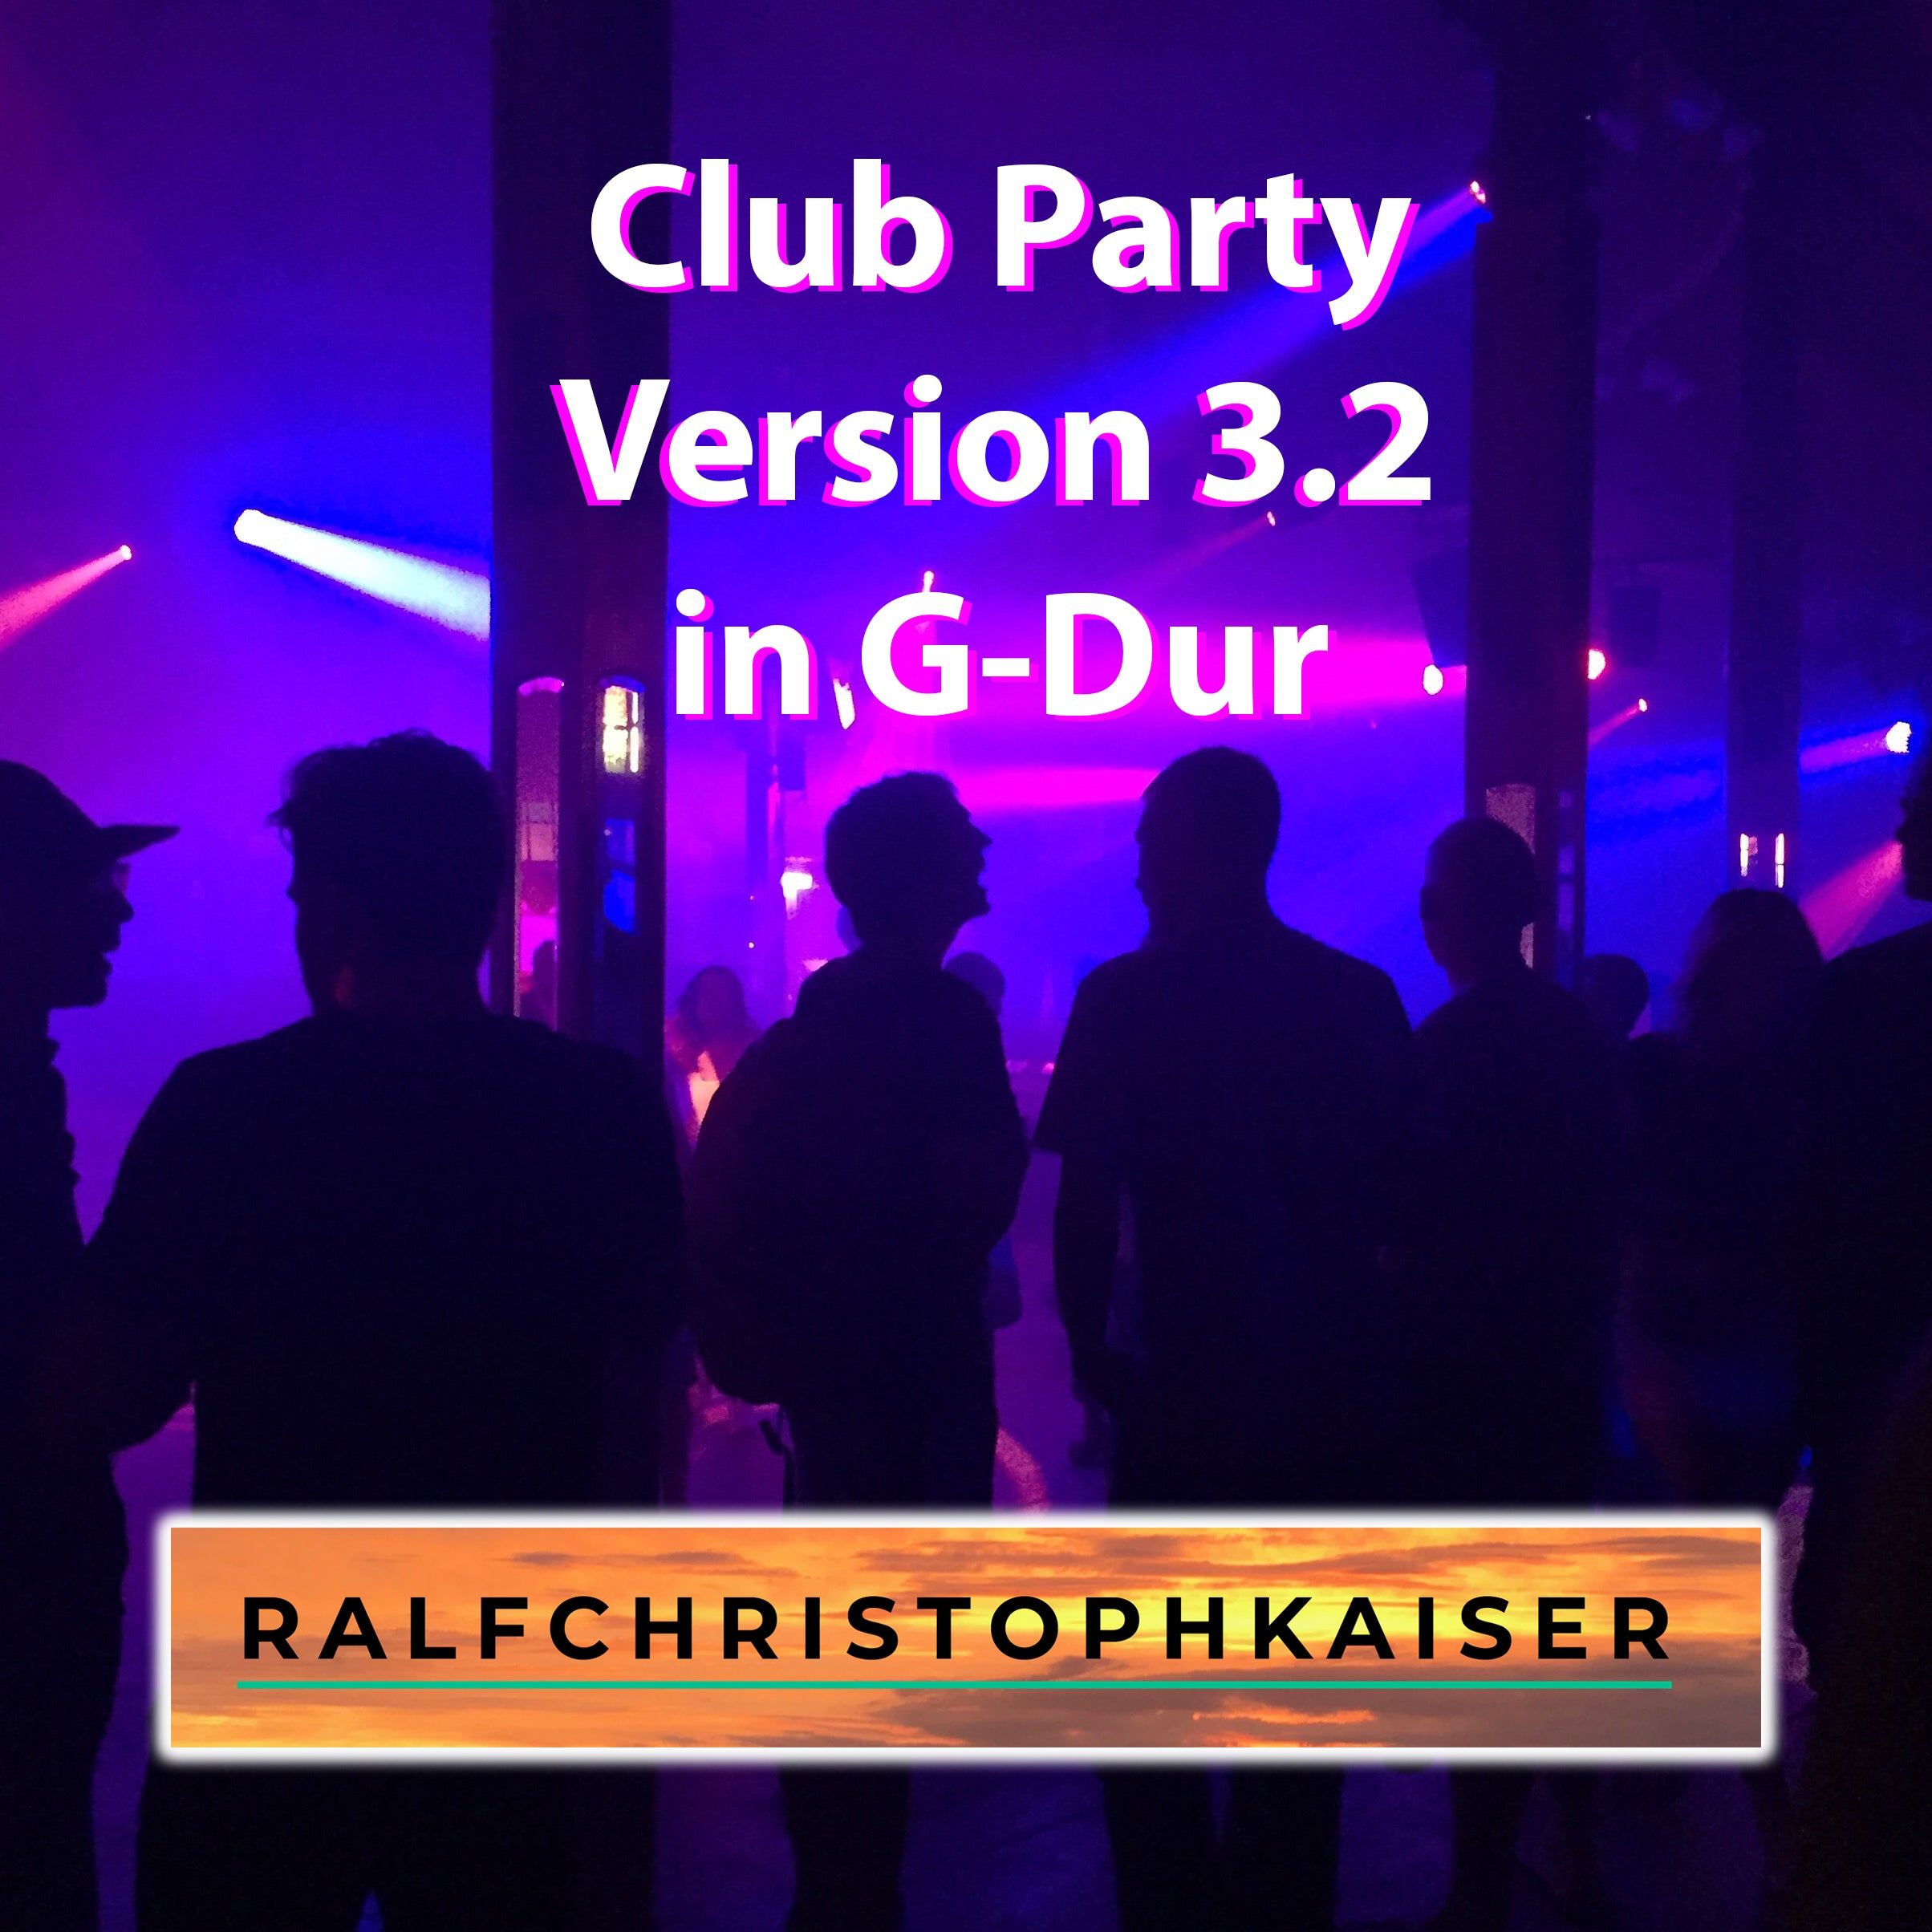 Club Party Version 3.2 Orchester Version in G-Dur by Ralf Christoph Kaiser High Resolution wav file